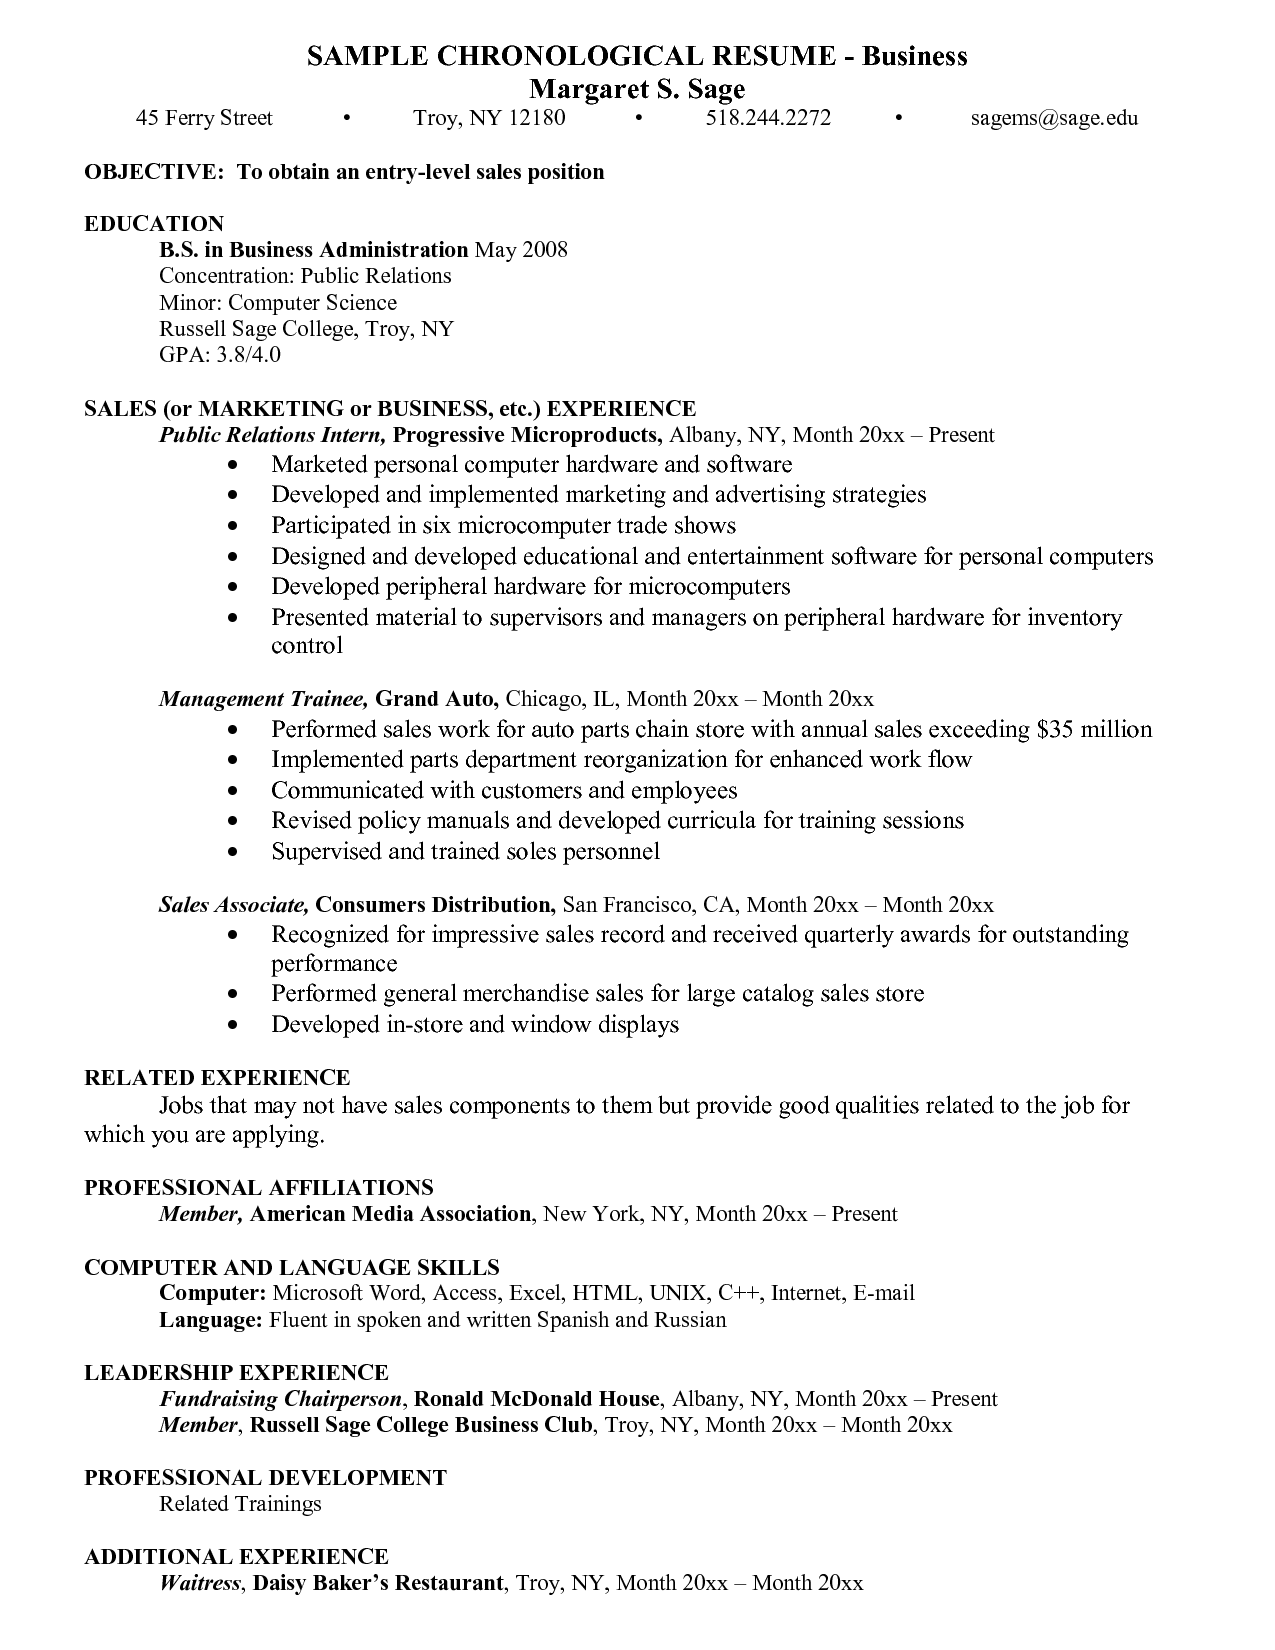 Free Chronological Resume Template http//www